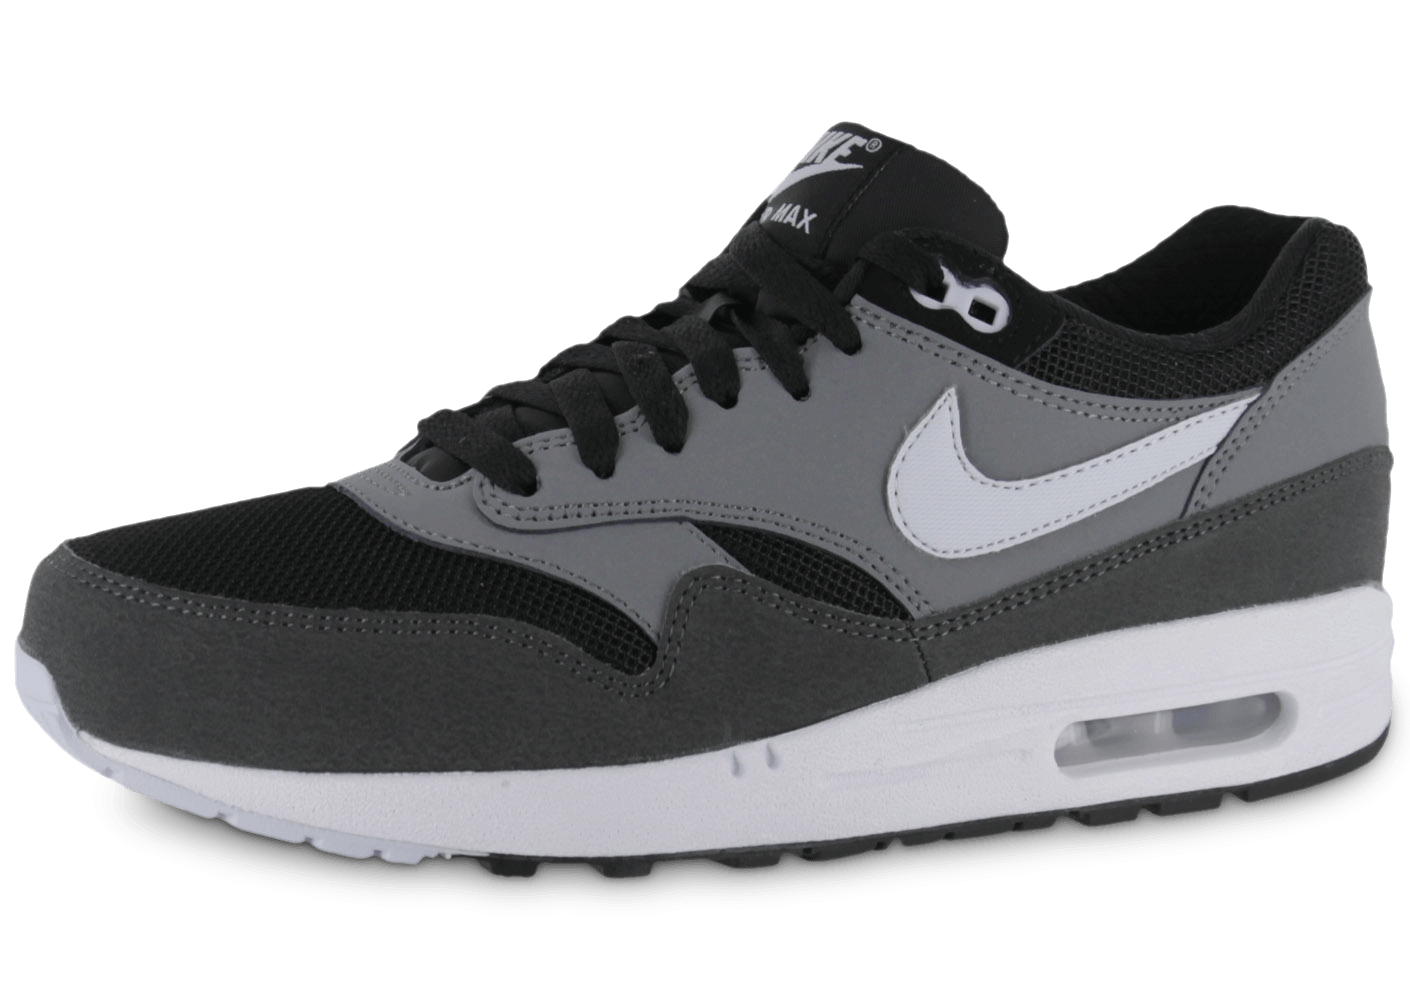 nike air max 1 essential grise chaussures homme chausport. Black Bedroom Furniture Sets. Home Design Ideas